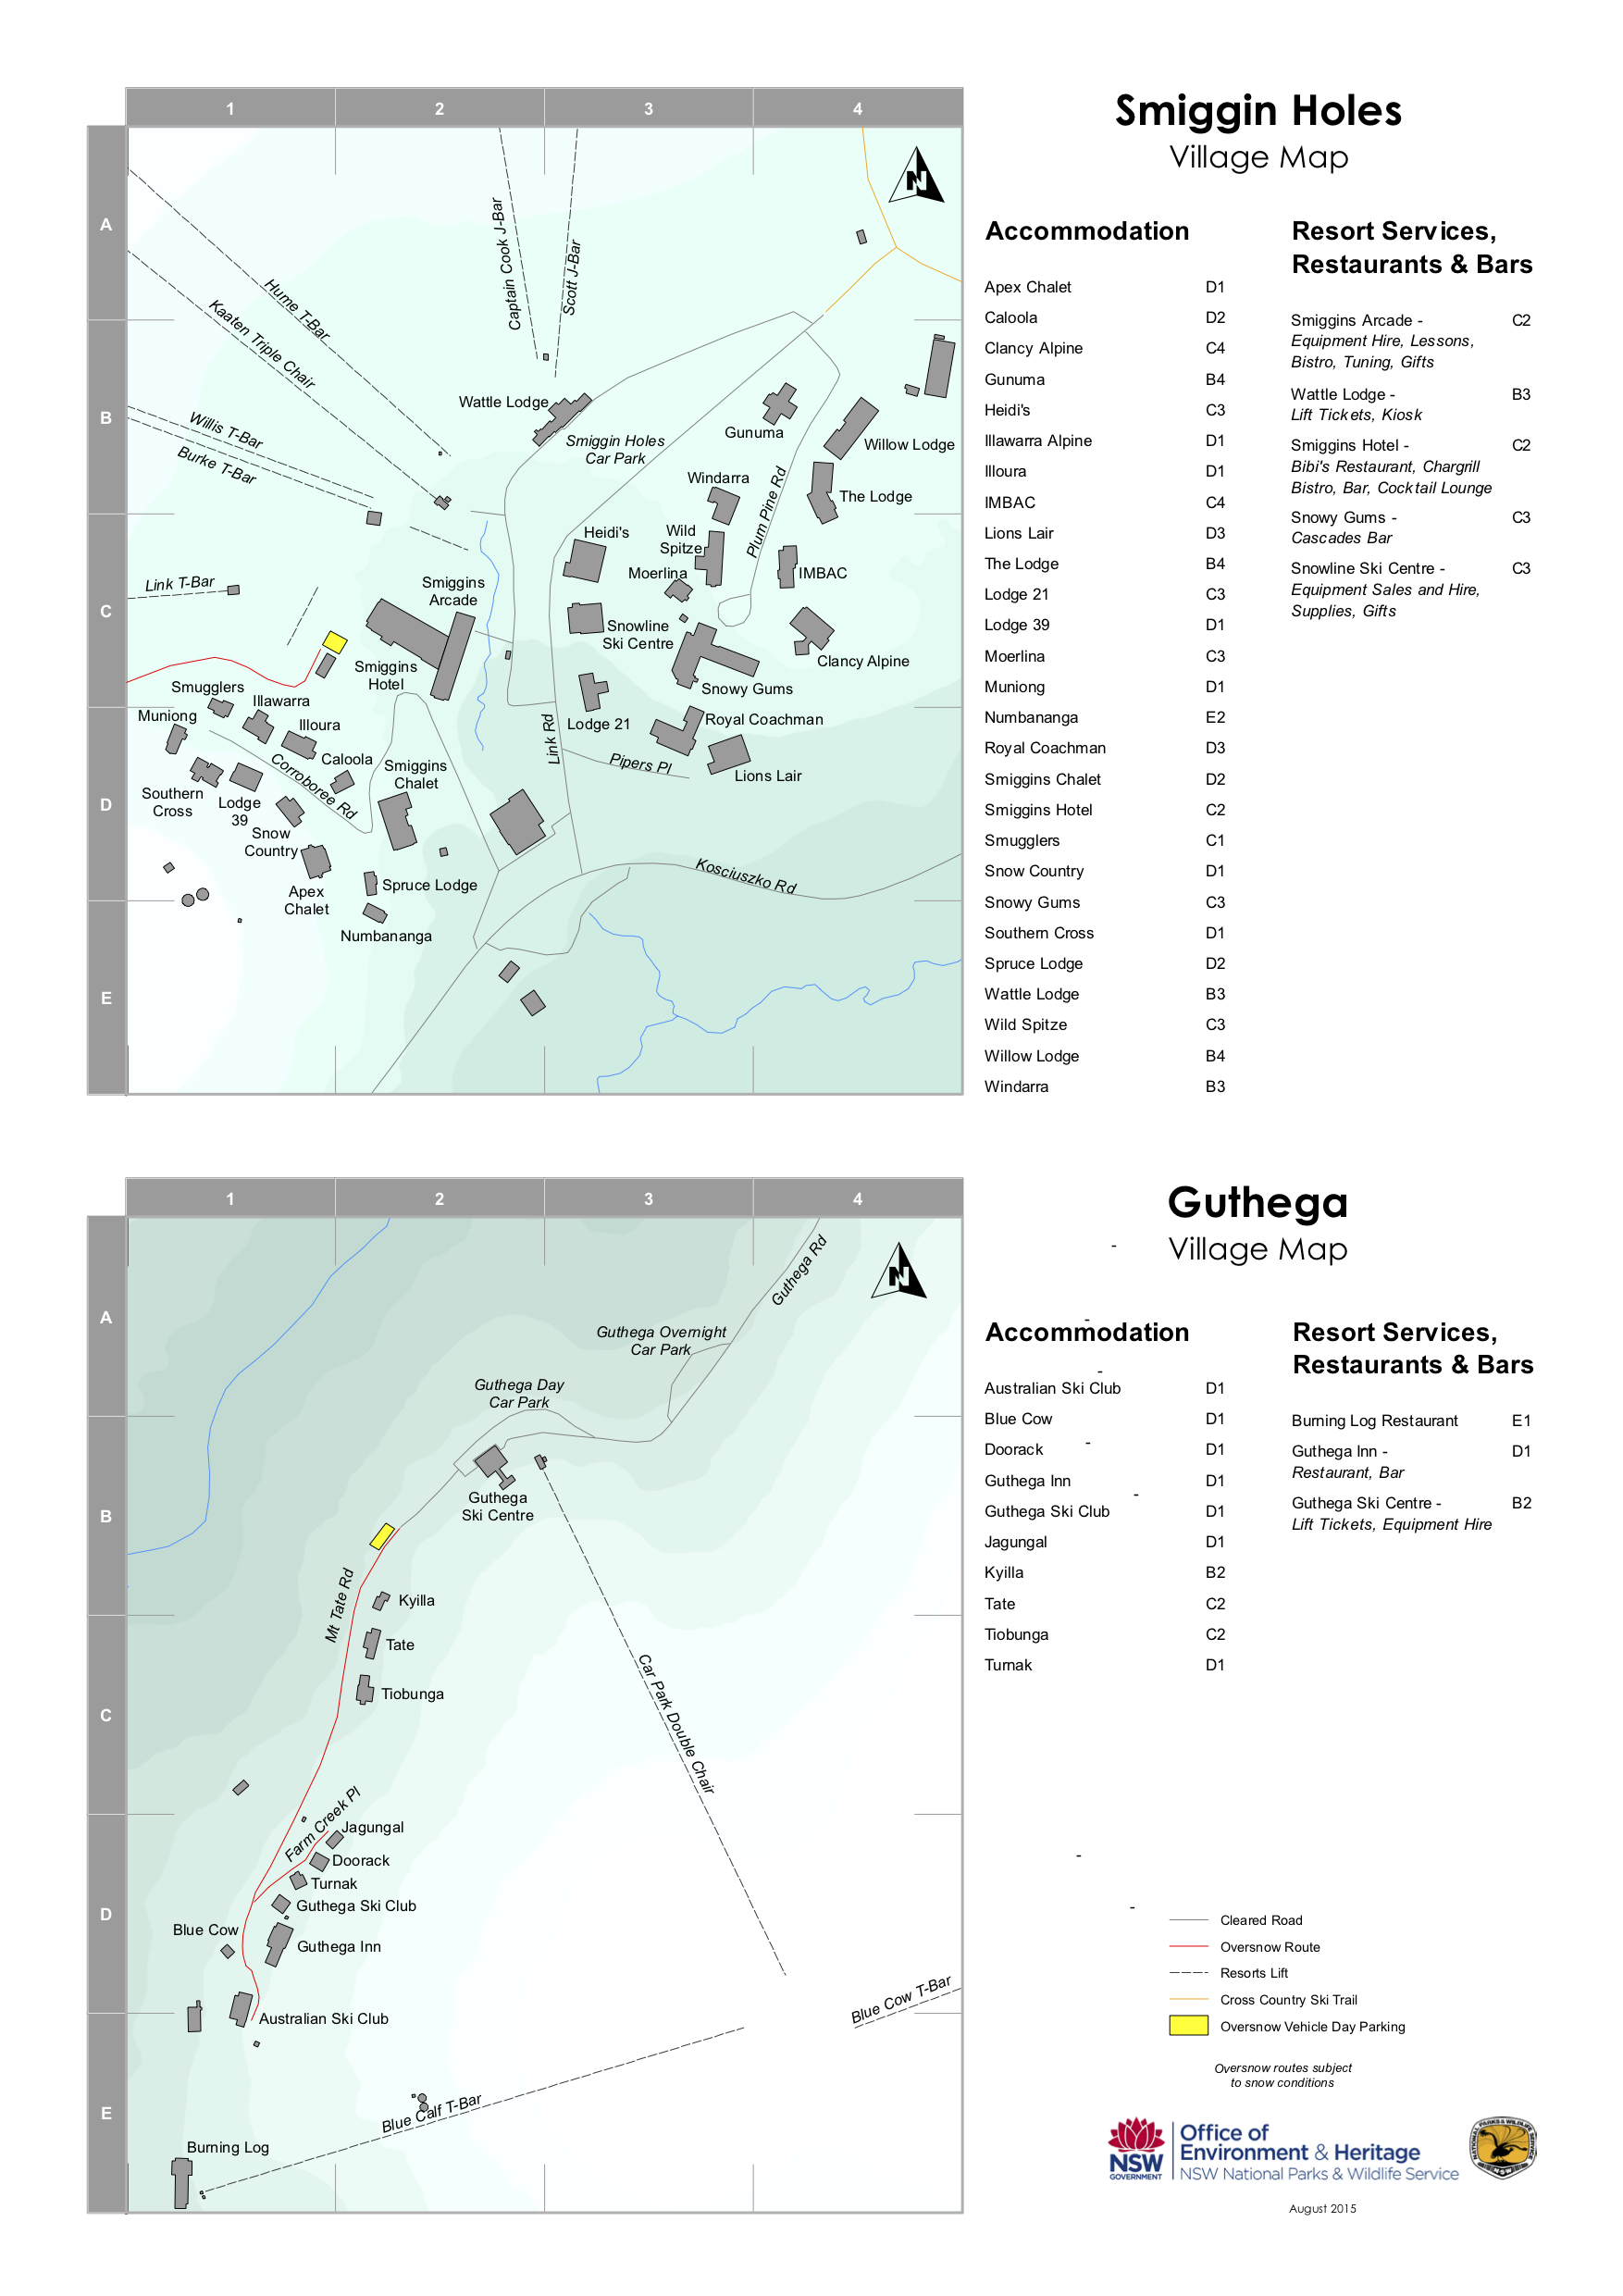 map-smiggin-holes-guthega-2805